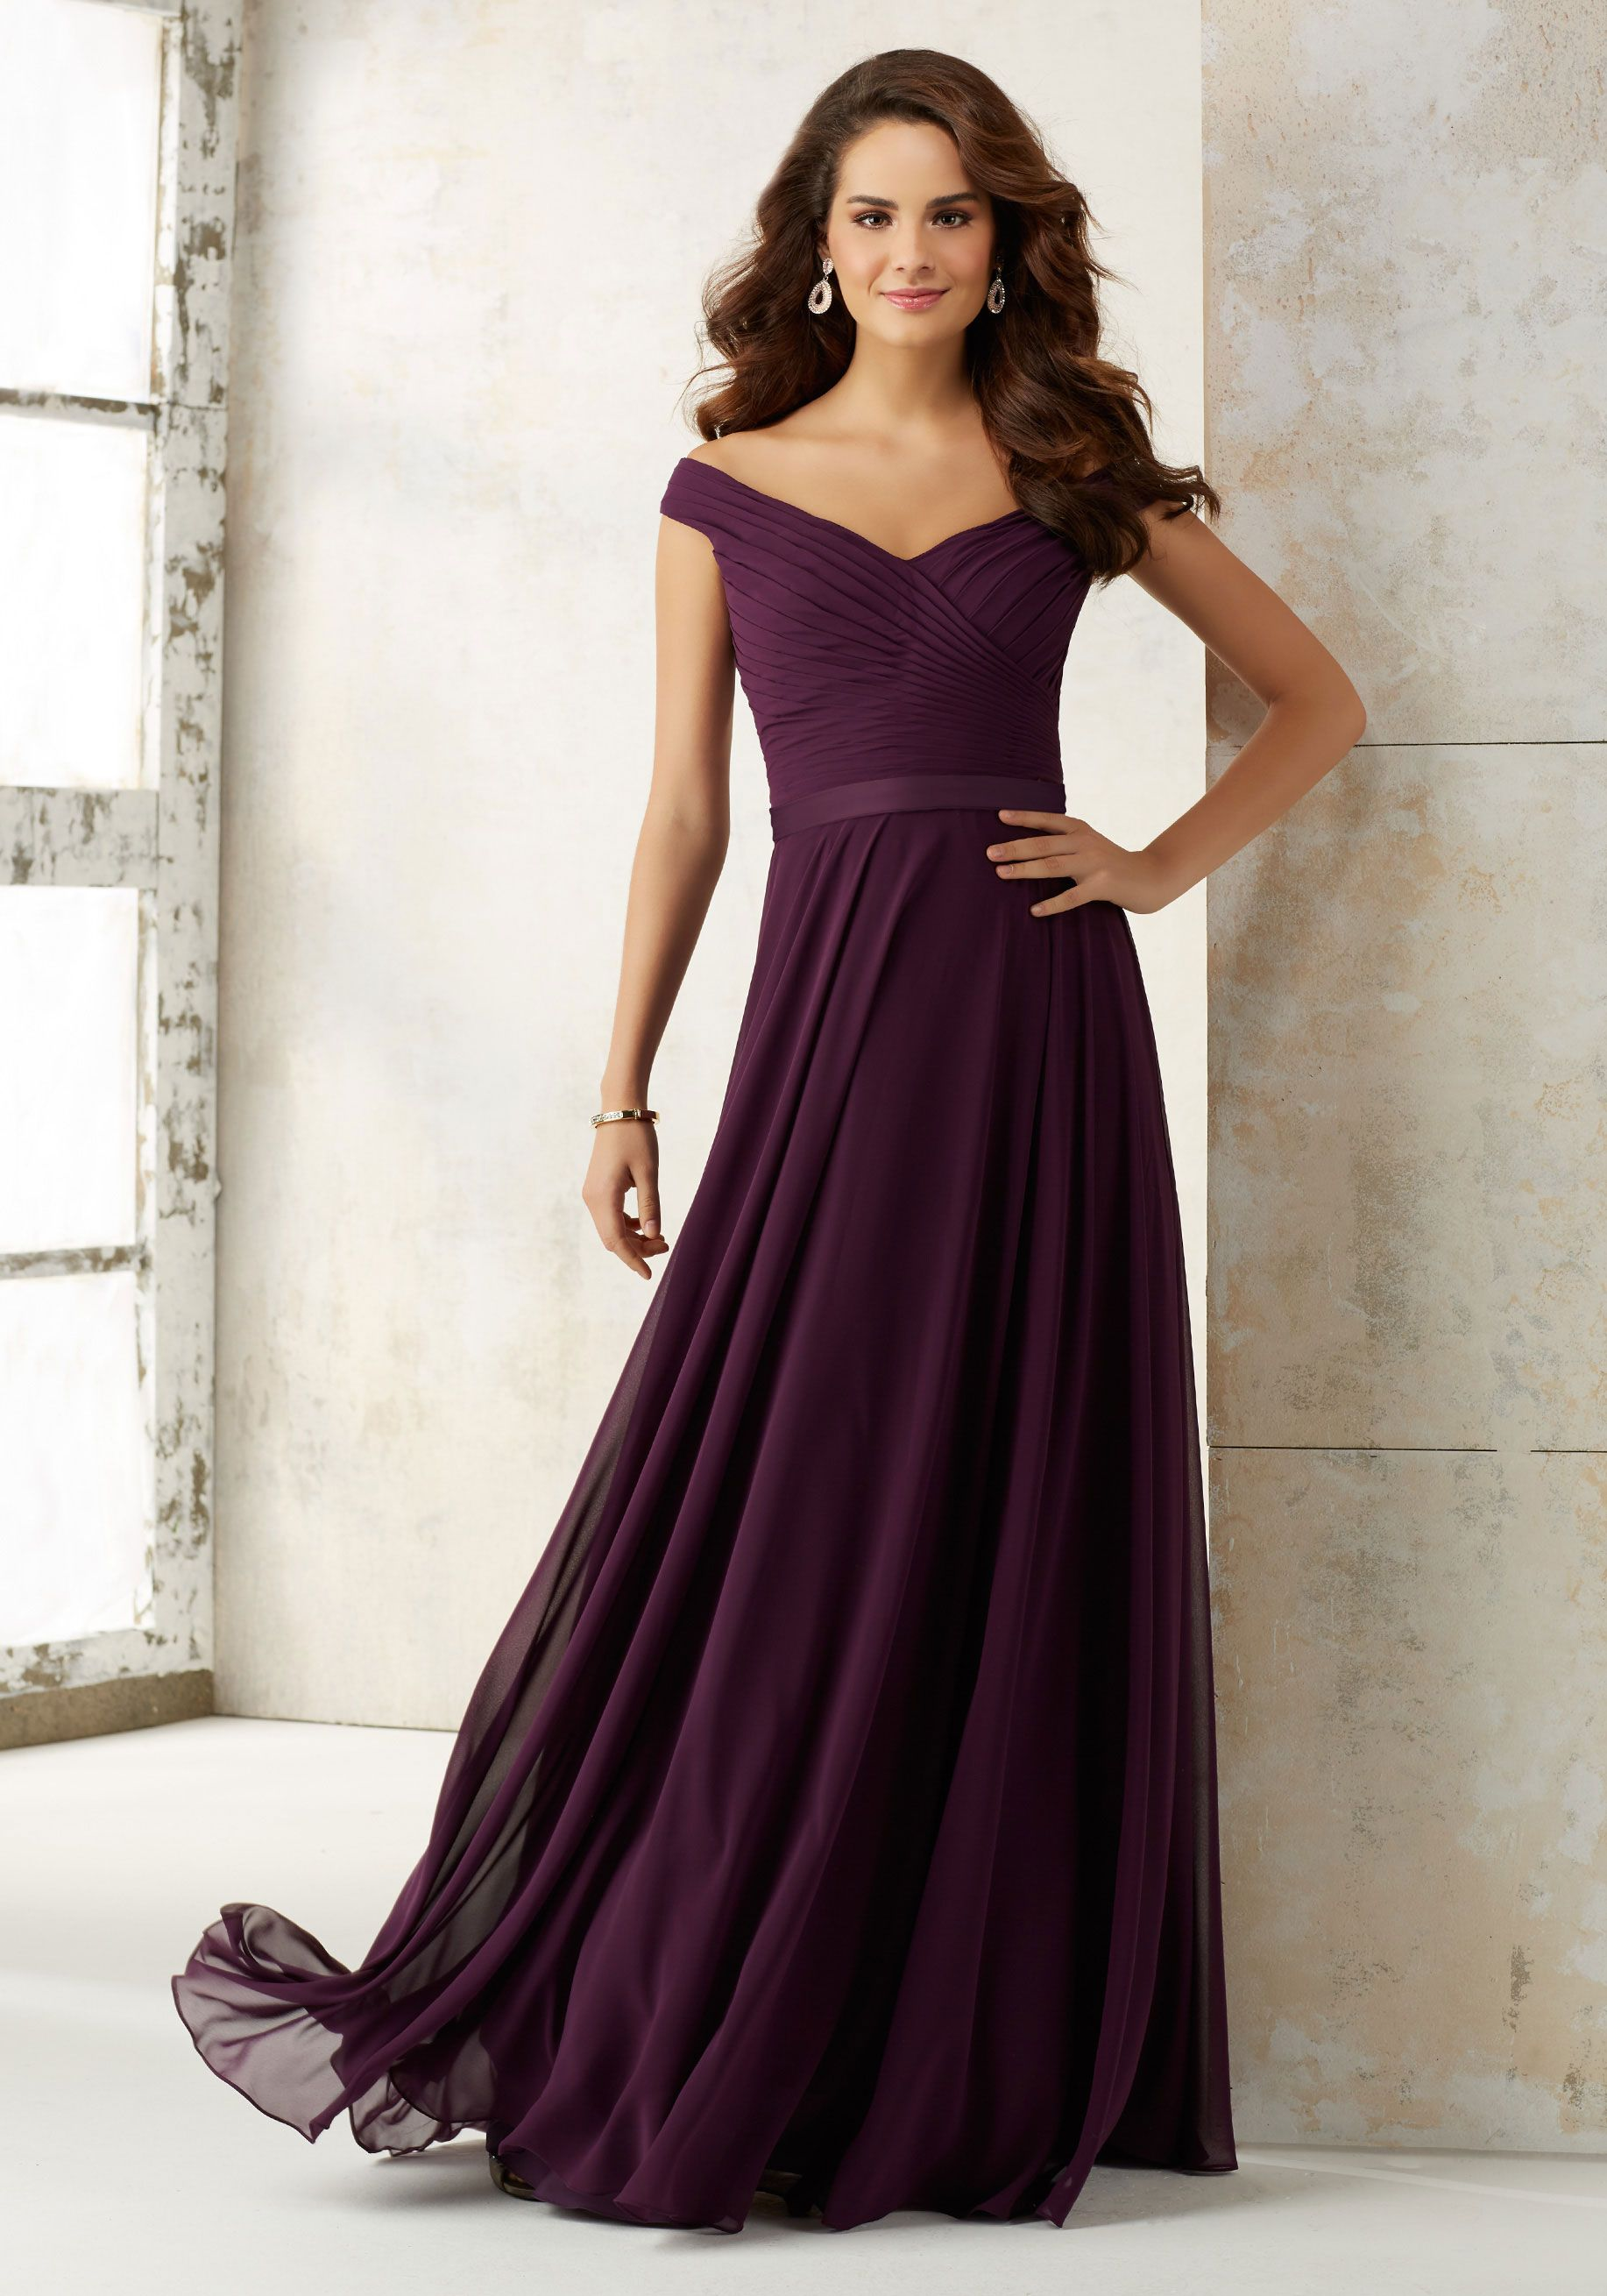 54650c7e7806 Chiffon Bridesmaids Dress with Off-the-Shoulder Neckline